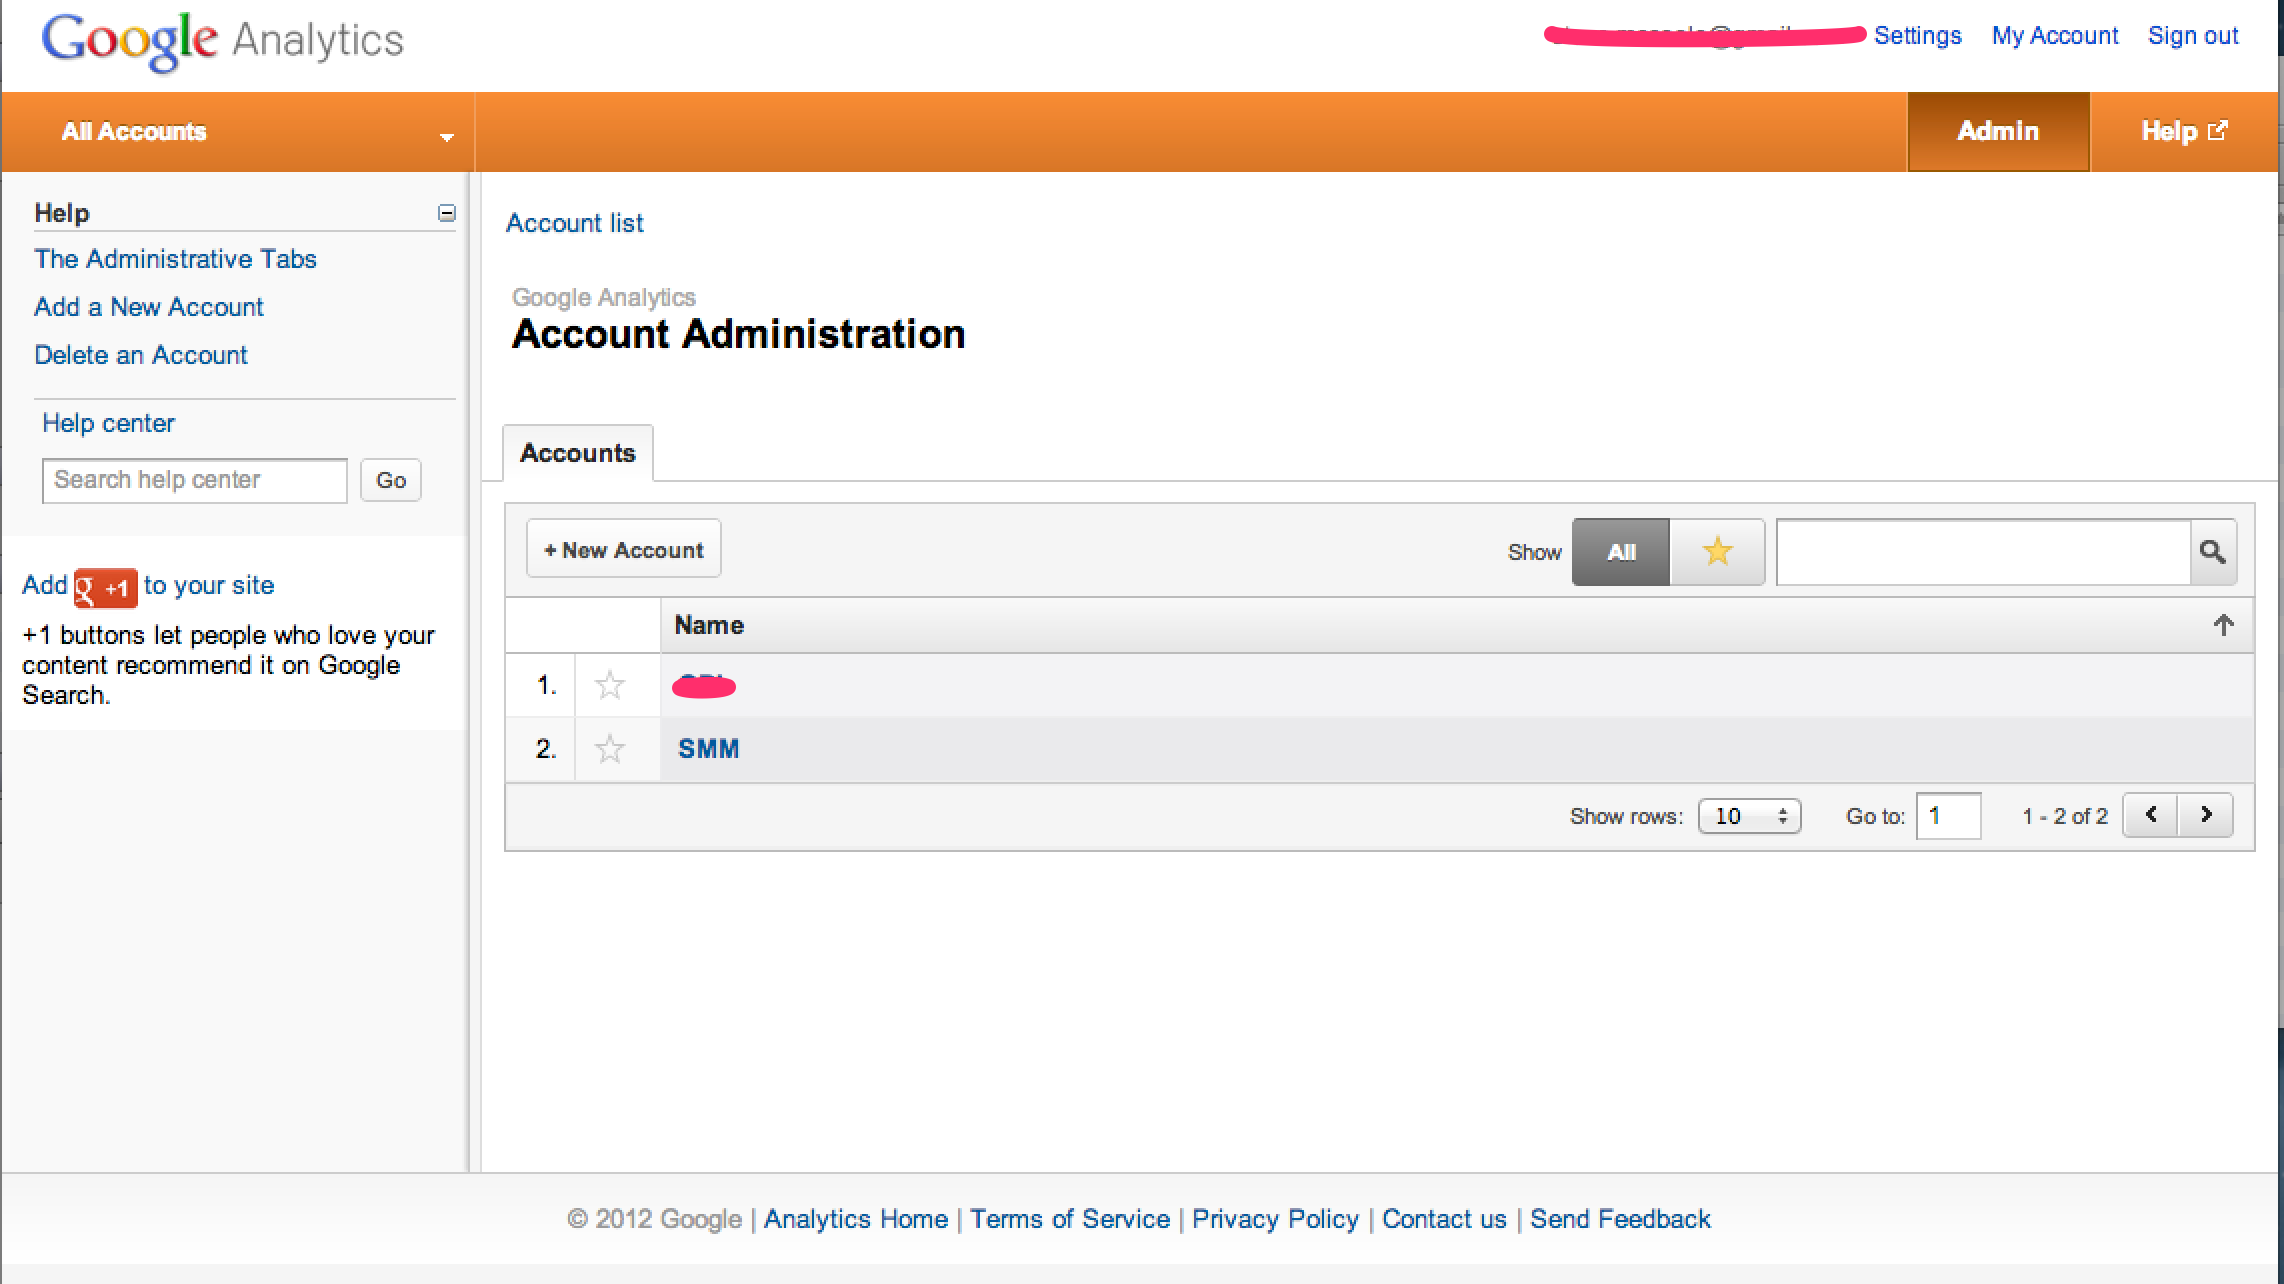 Google Analytics Login Screen